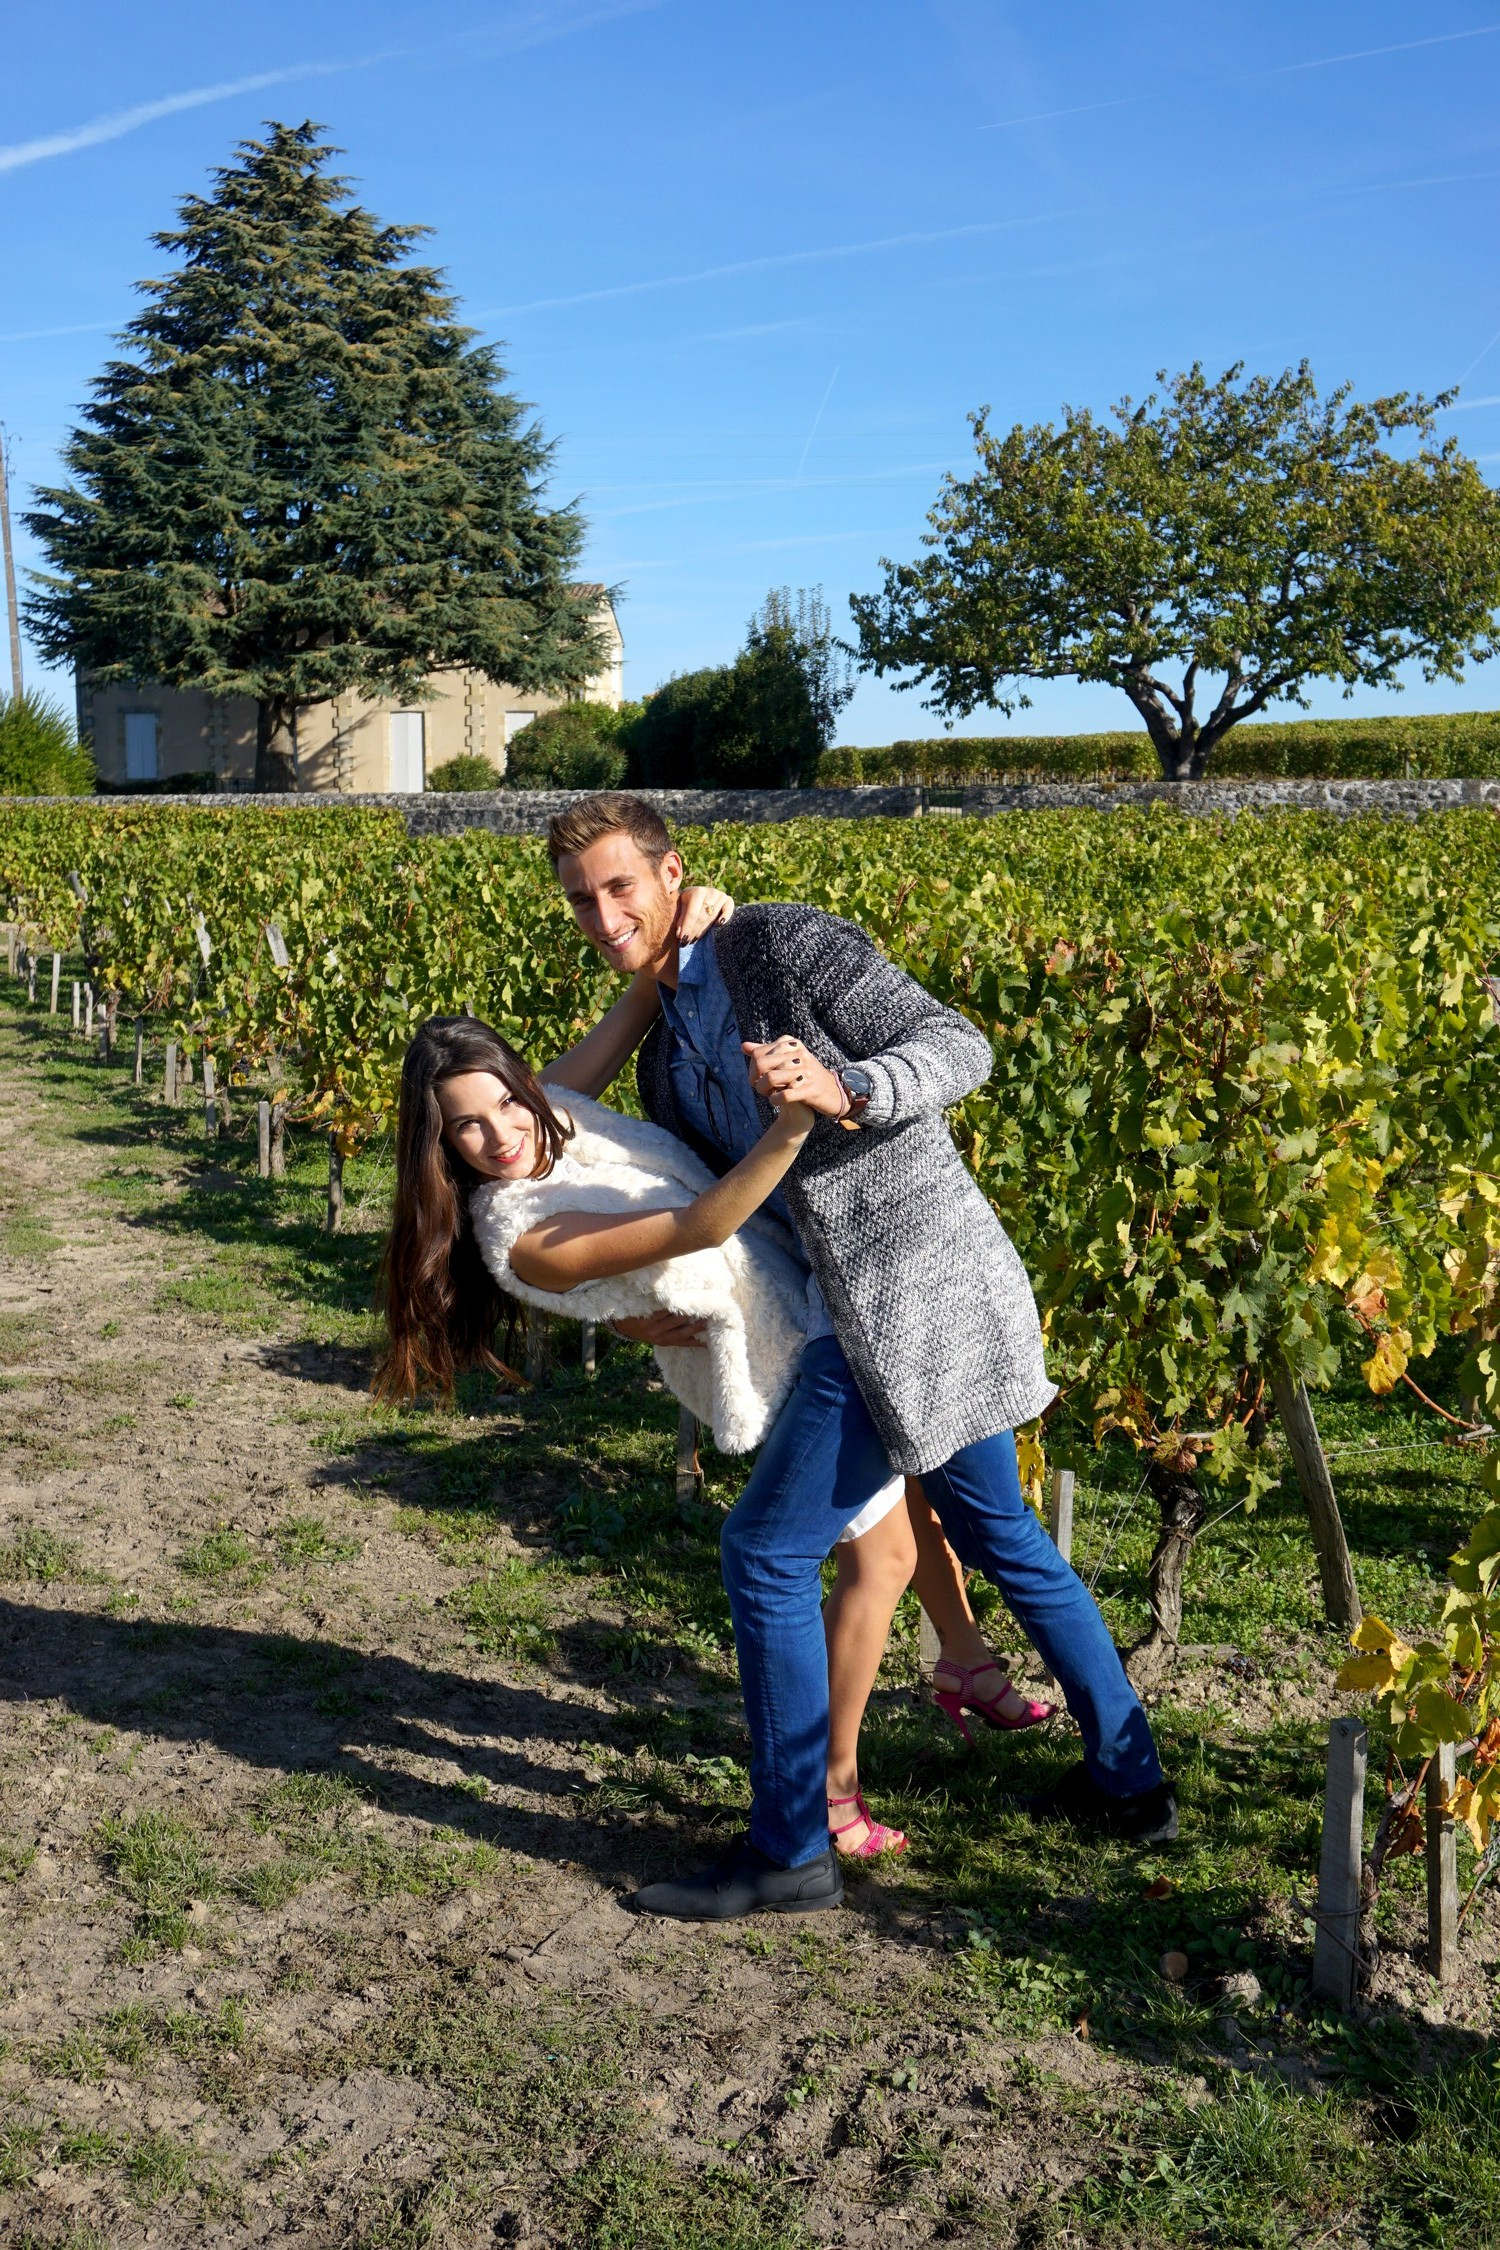 1-an-du-blog-en-couple-bordeaux-corse-blog-voyage-lifestyle-mode-look-shooting-photo-couple-vigne-09